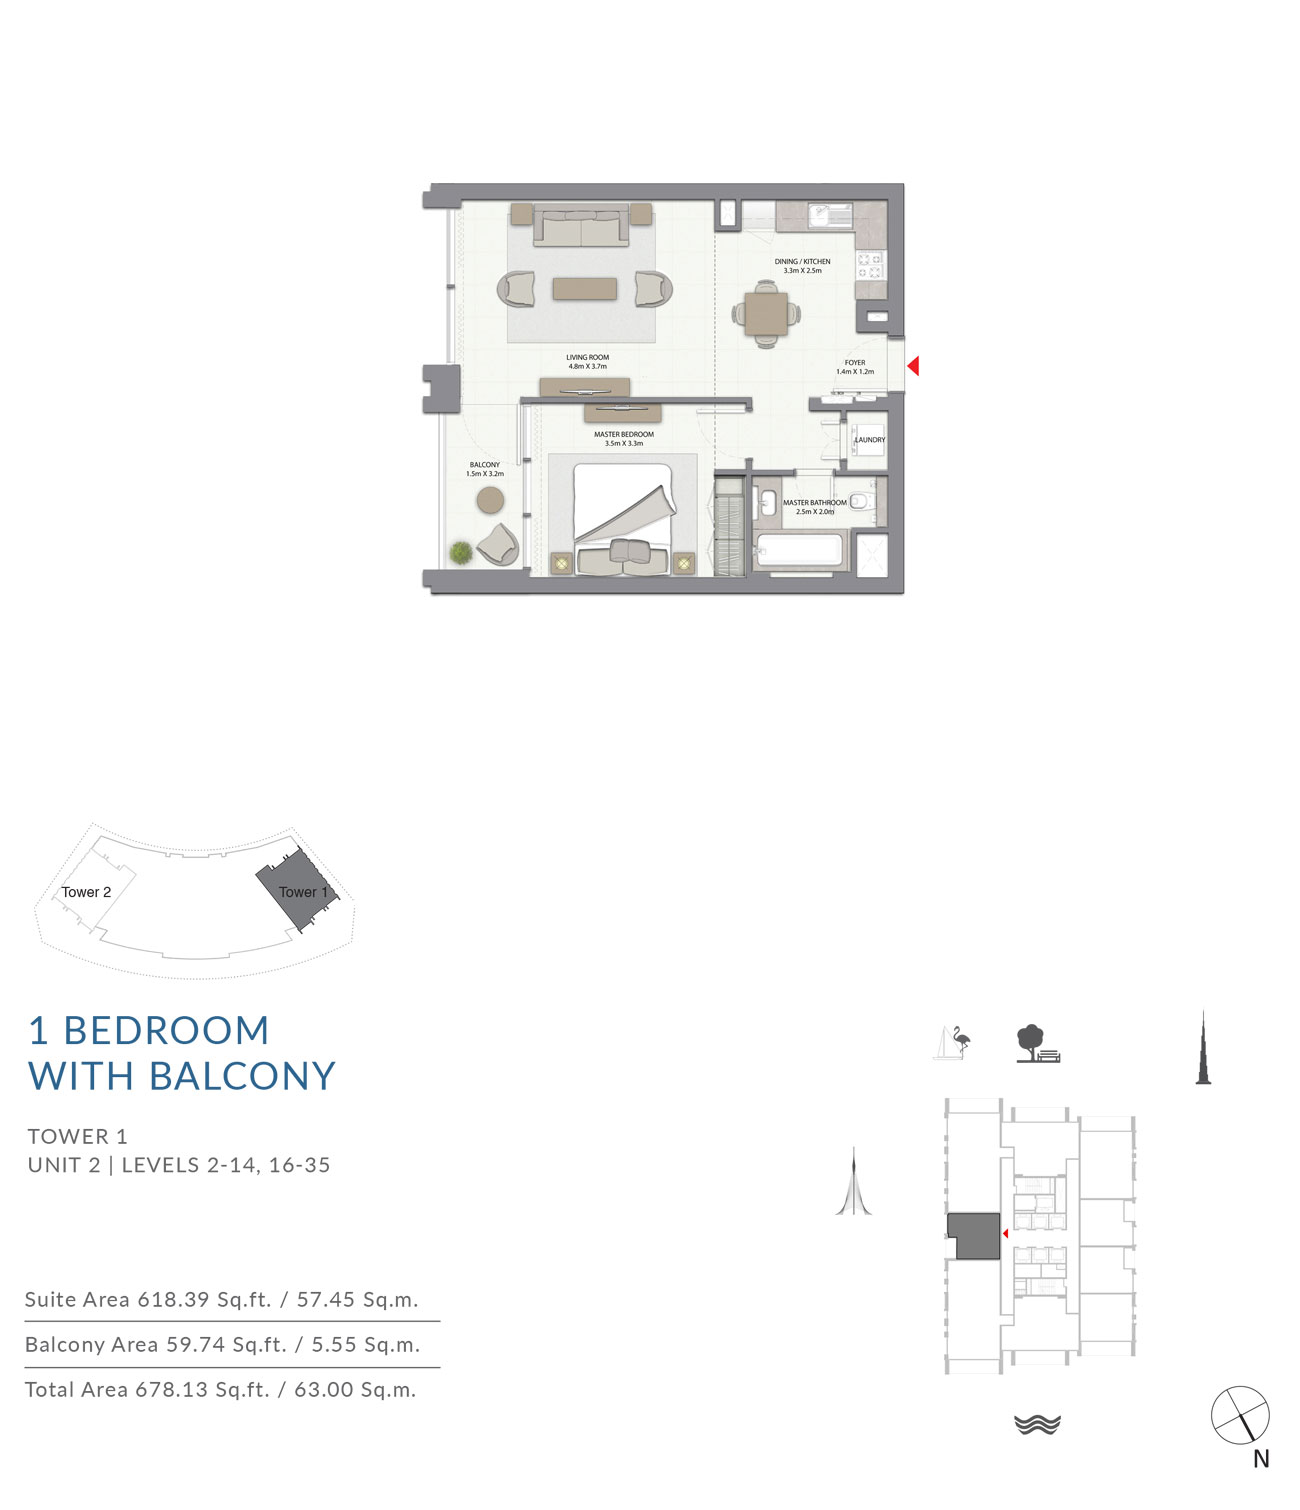 1 Bed with Balcony